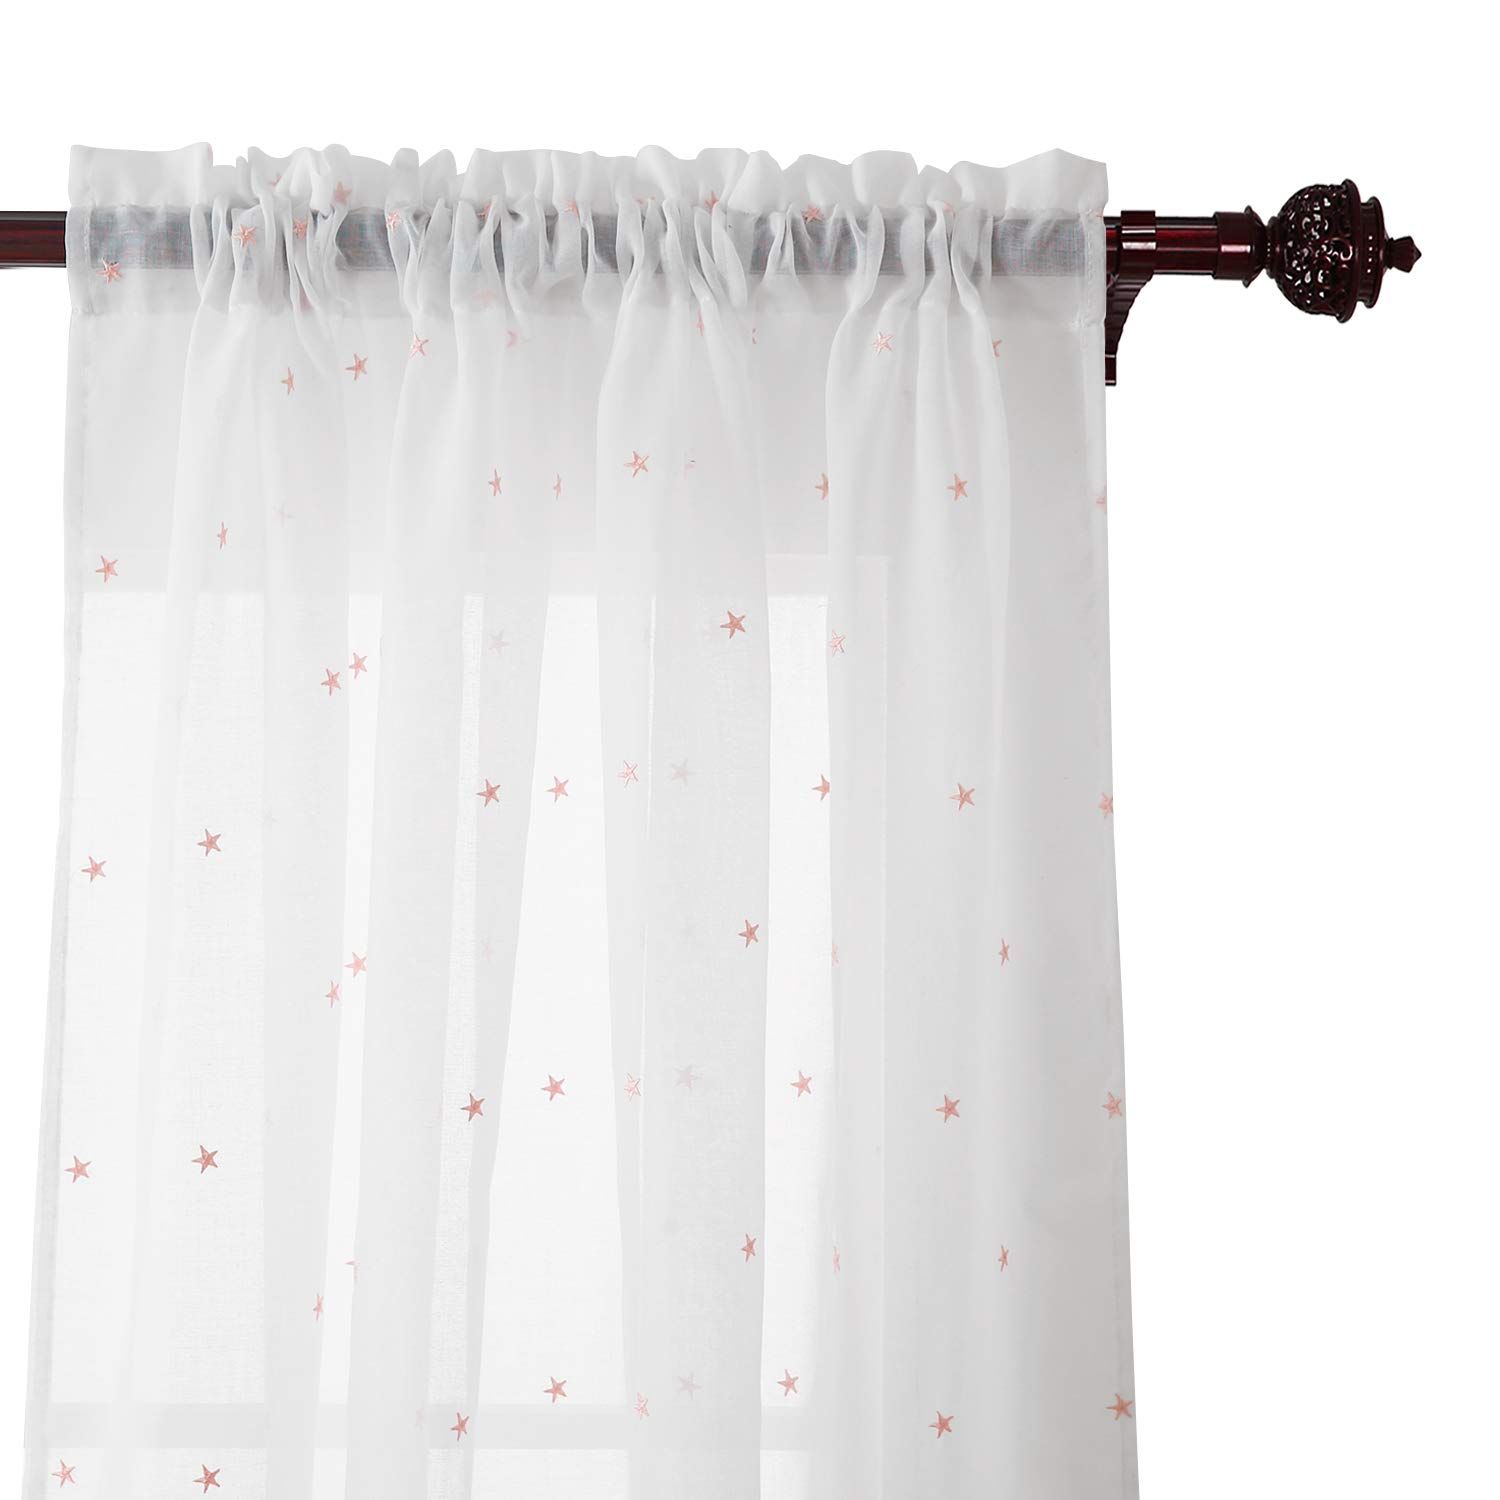 Deconovo Sheer White Curtains 96 Inches Long Star Sheer Curtains Rod Pocket Sheer Curtains for Living Room 52x96 Inch Pink Star 2 Panels